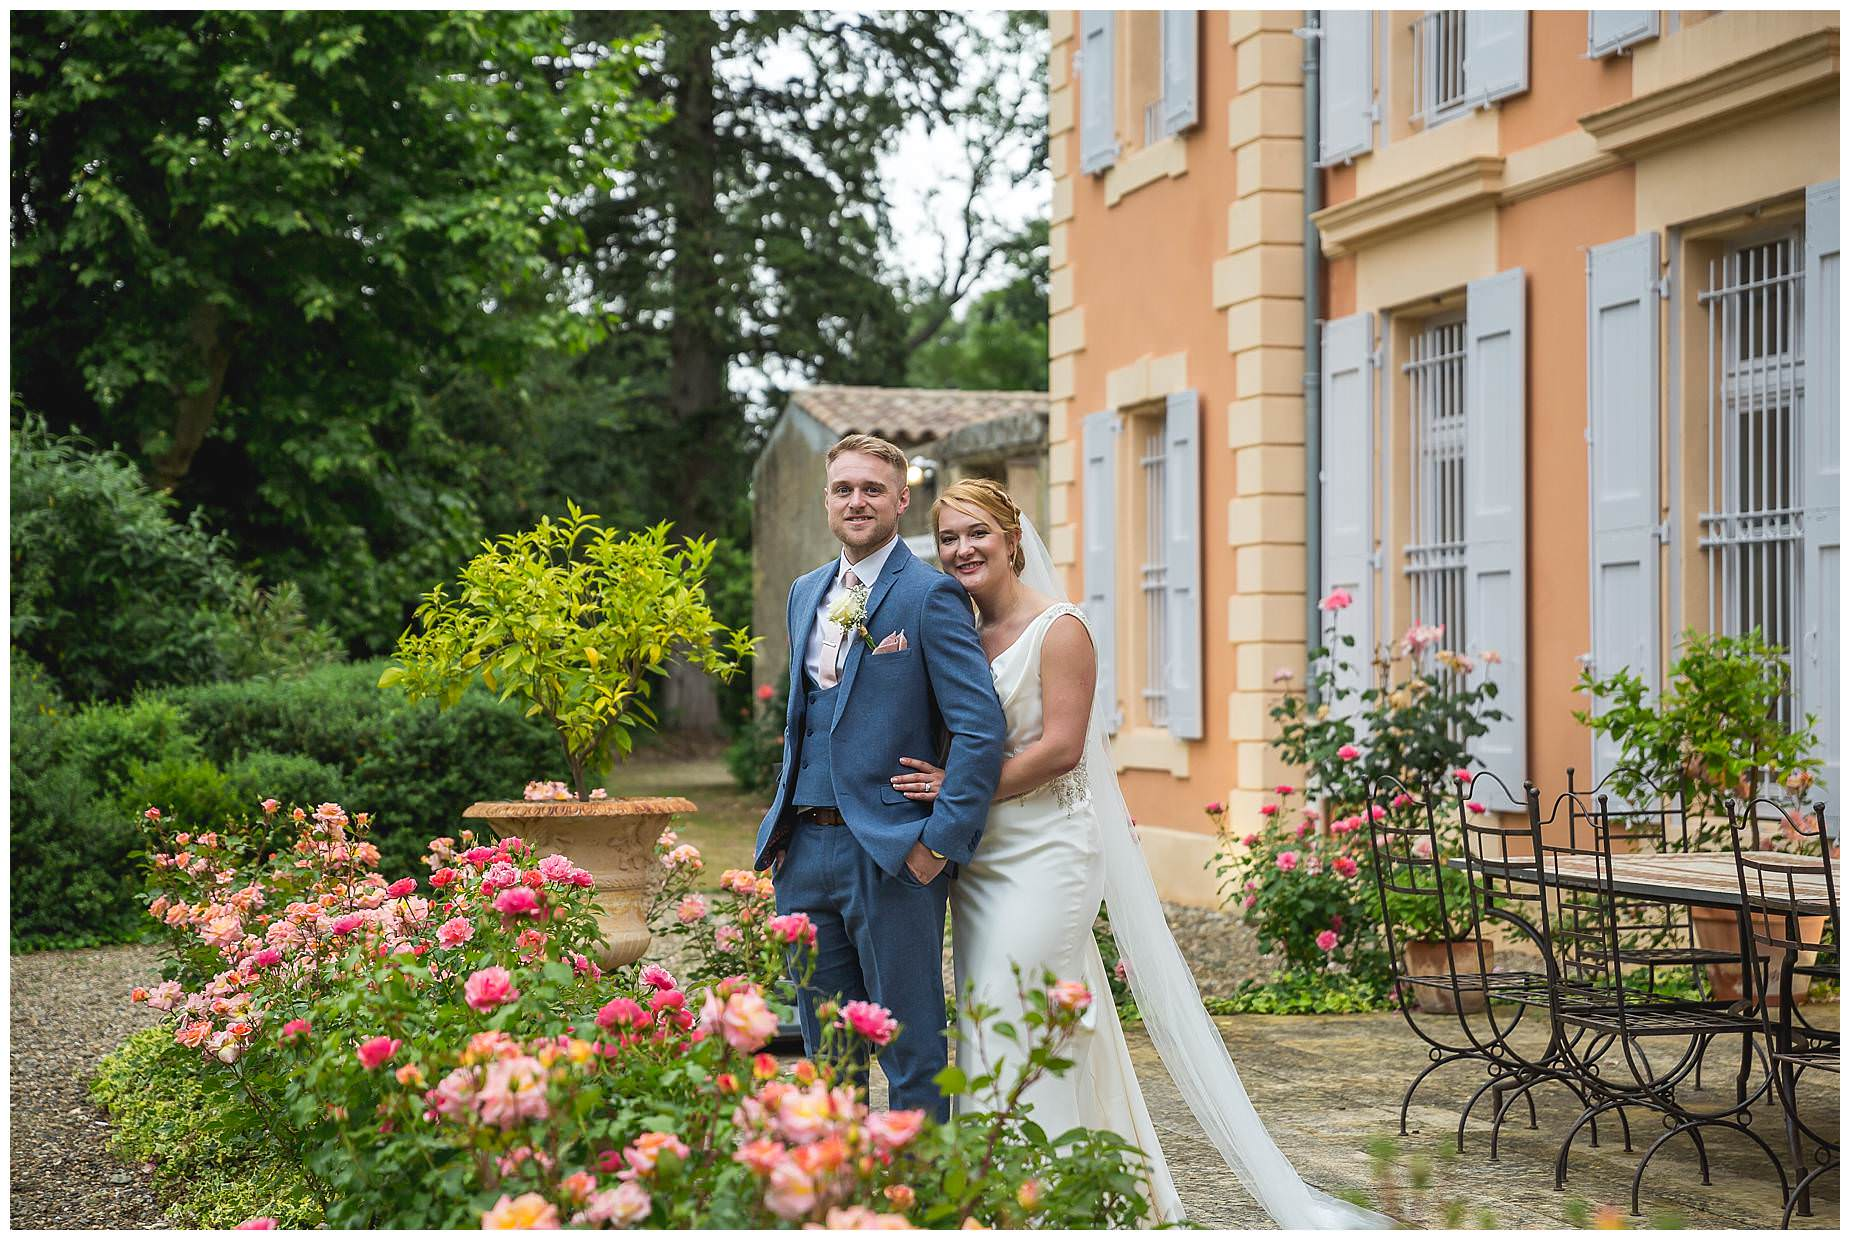 Chateau Roquelune Real Wedding